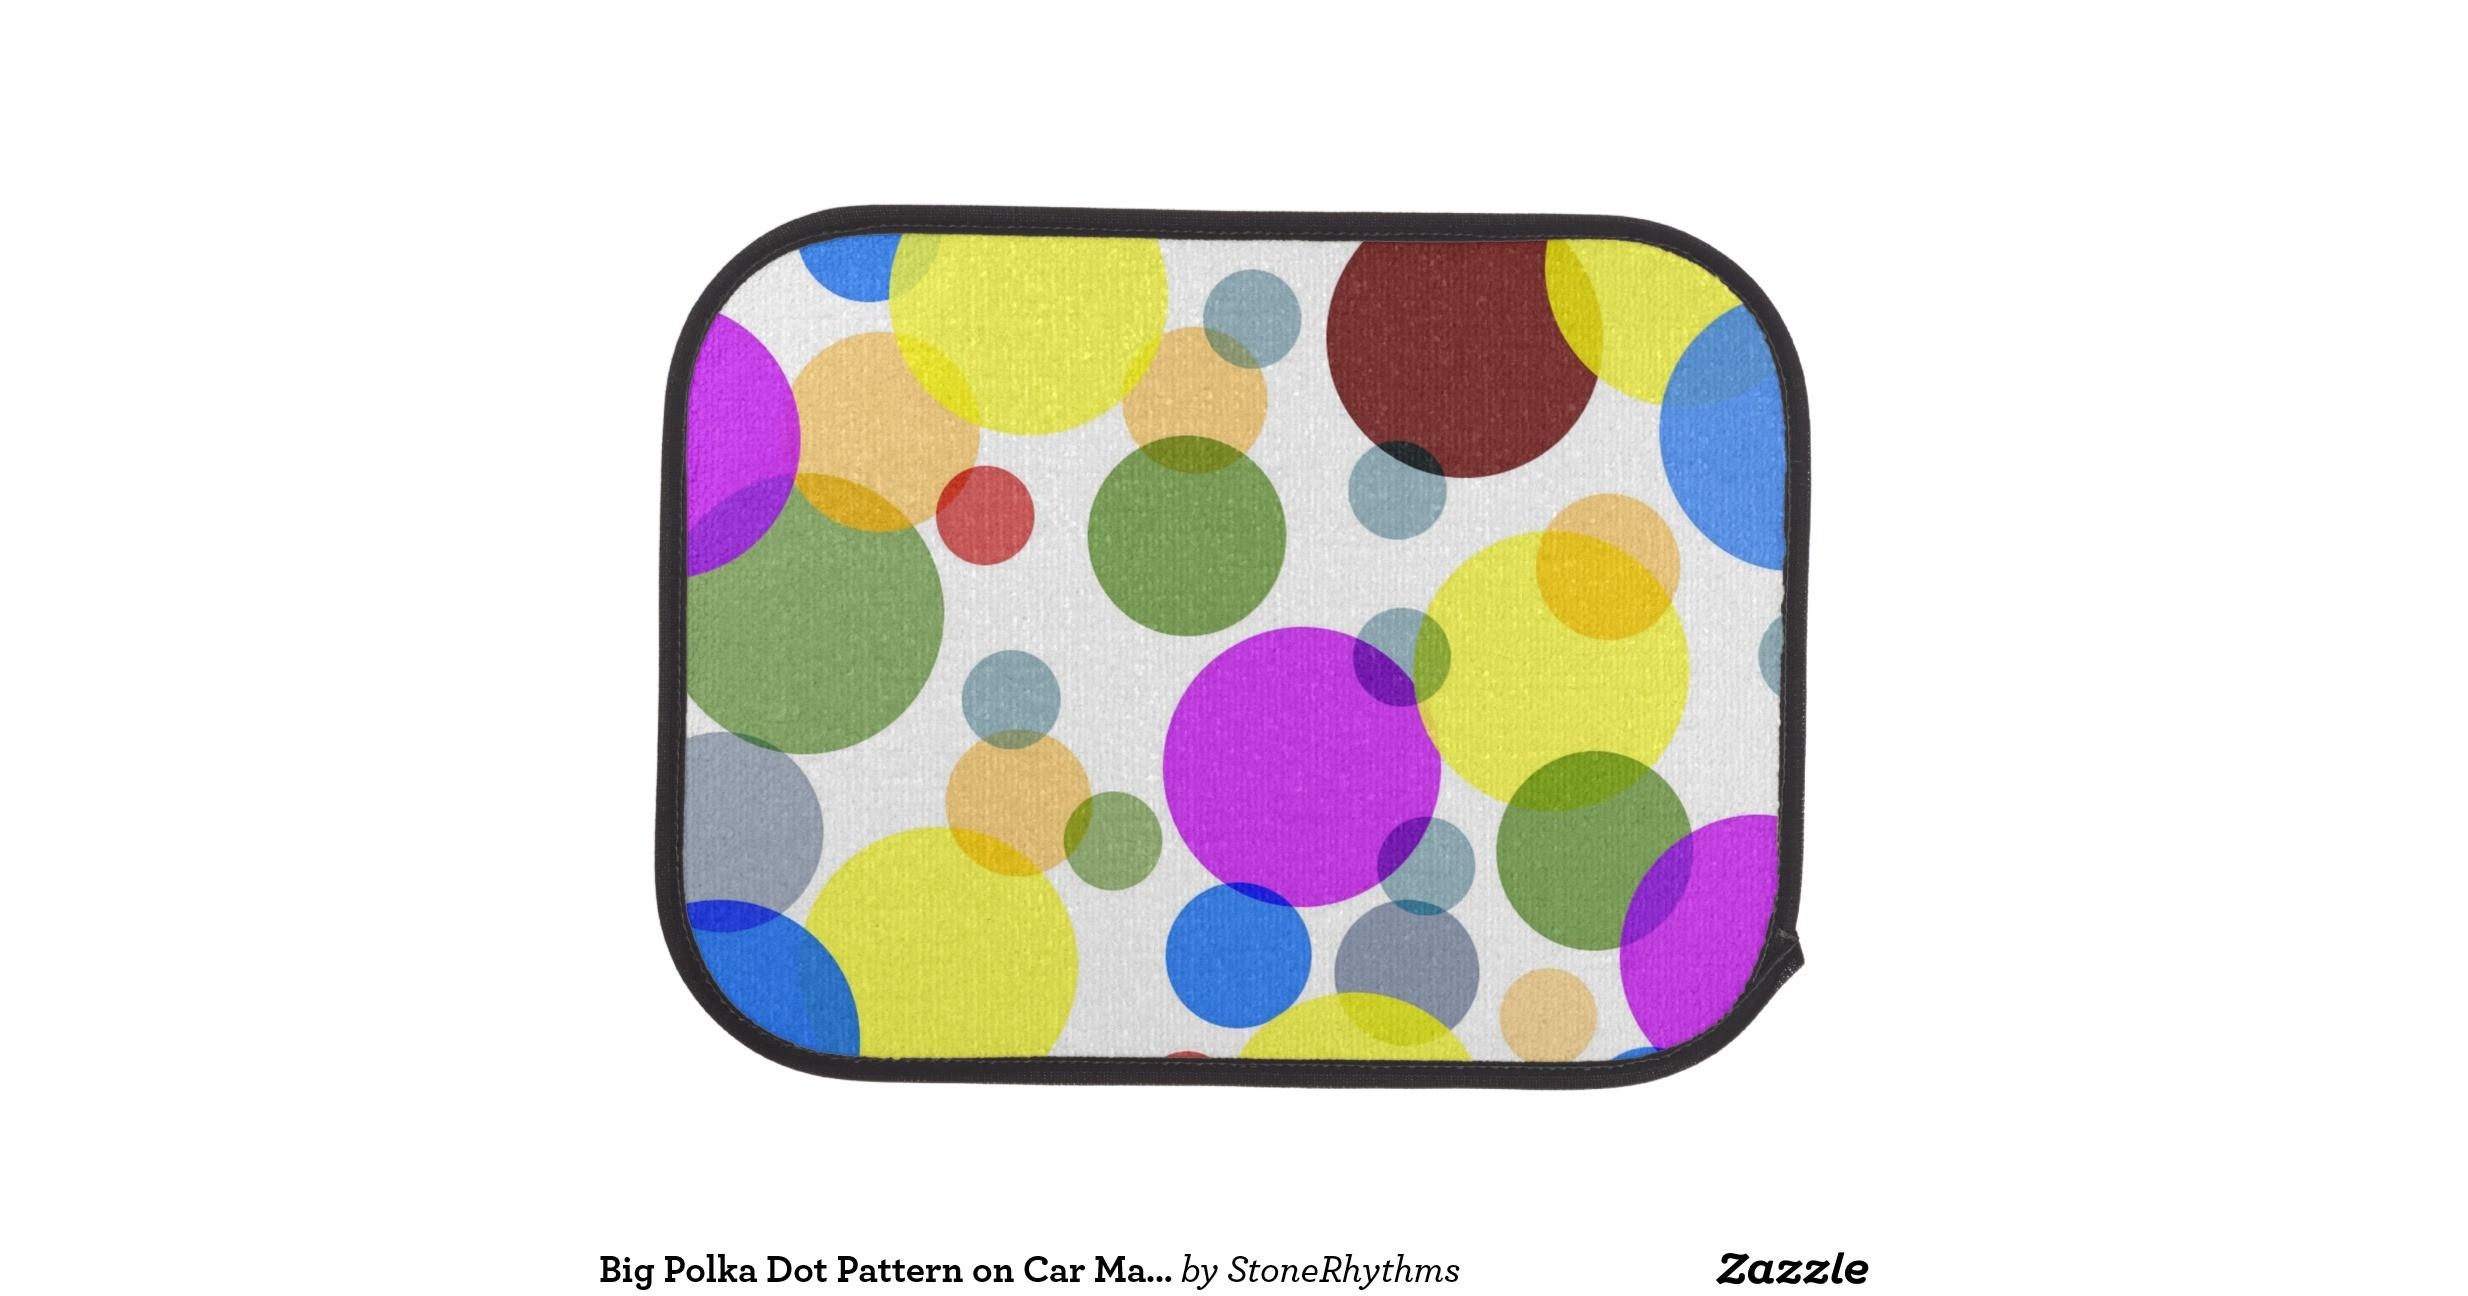 Big Polka Dot Pattern Car Mats Mat Zazzle